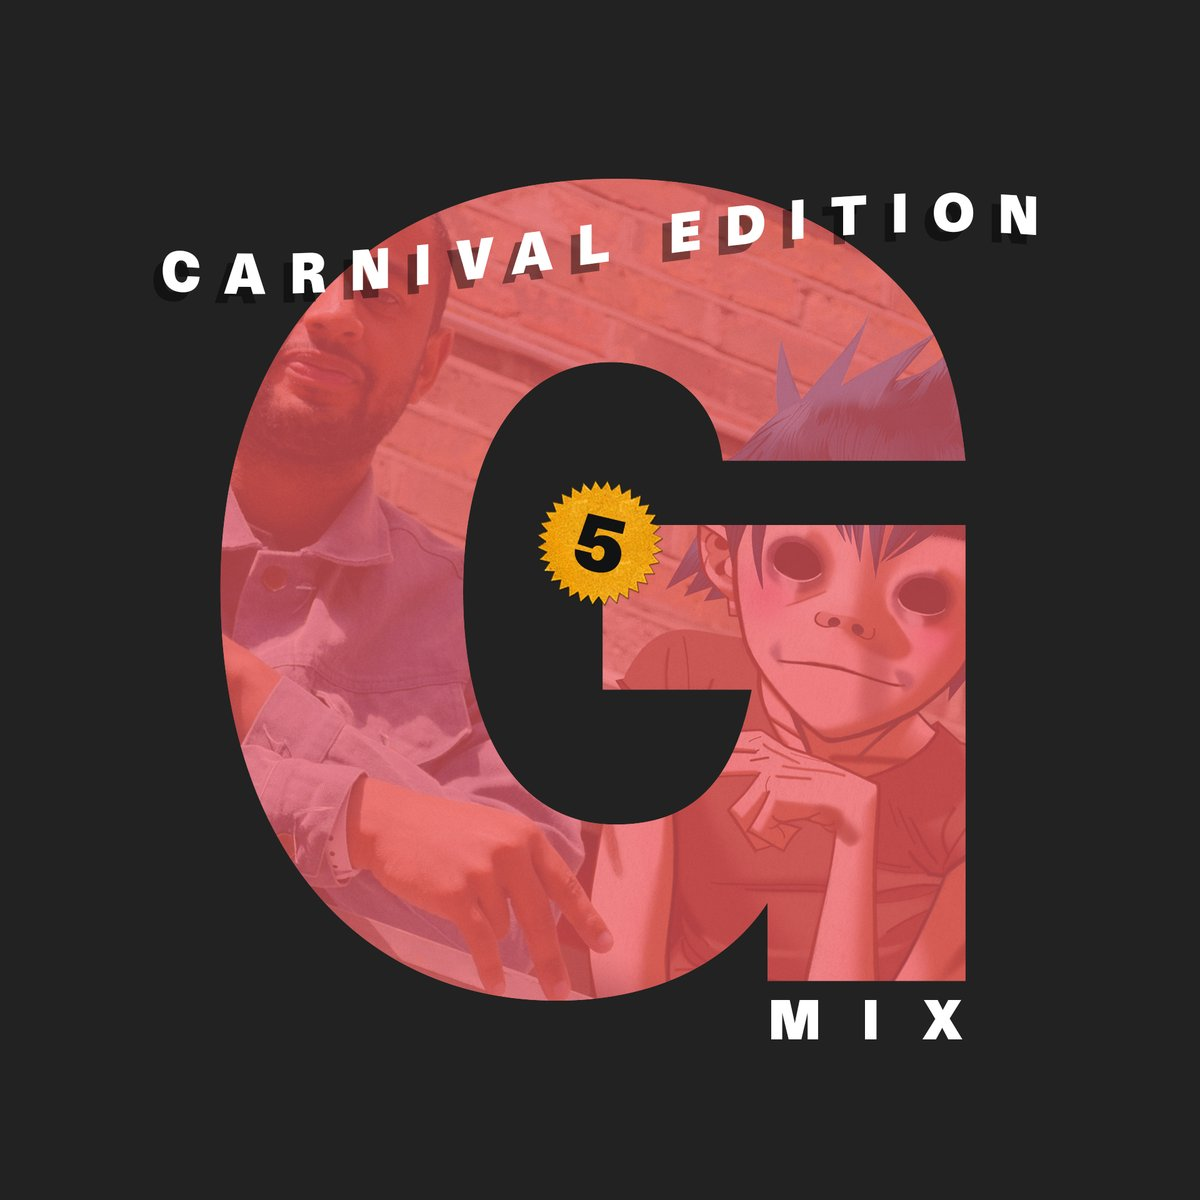 G-Mix: 2D (Carnival Edition)